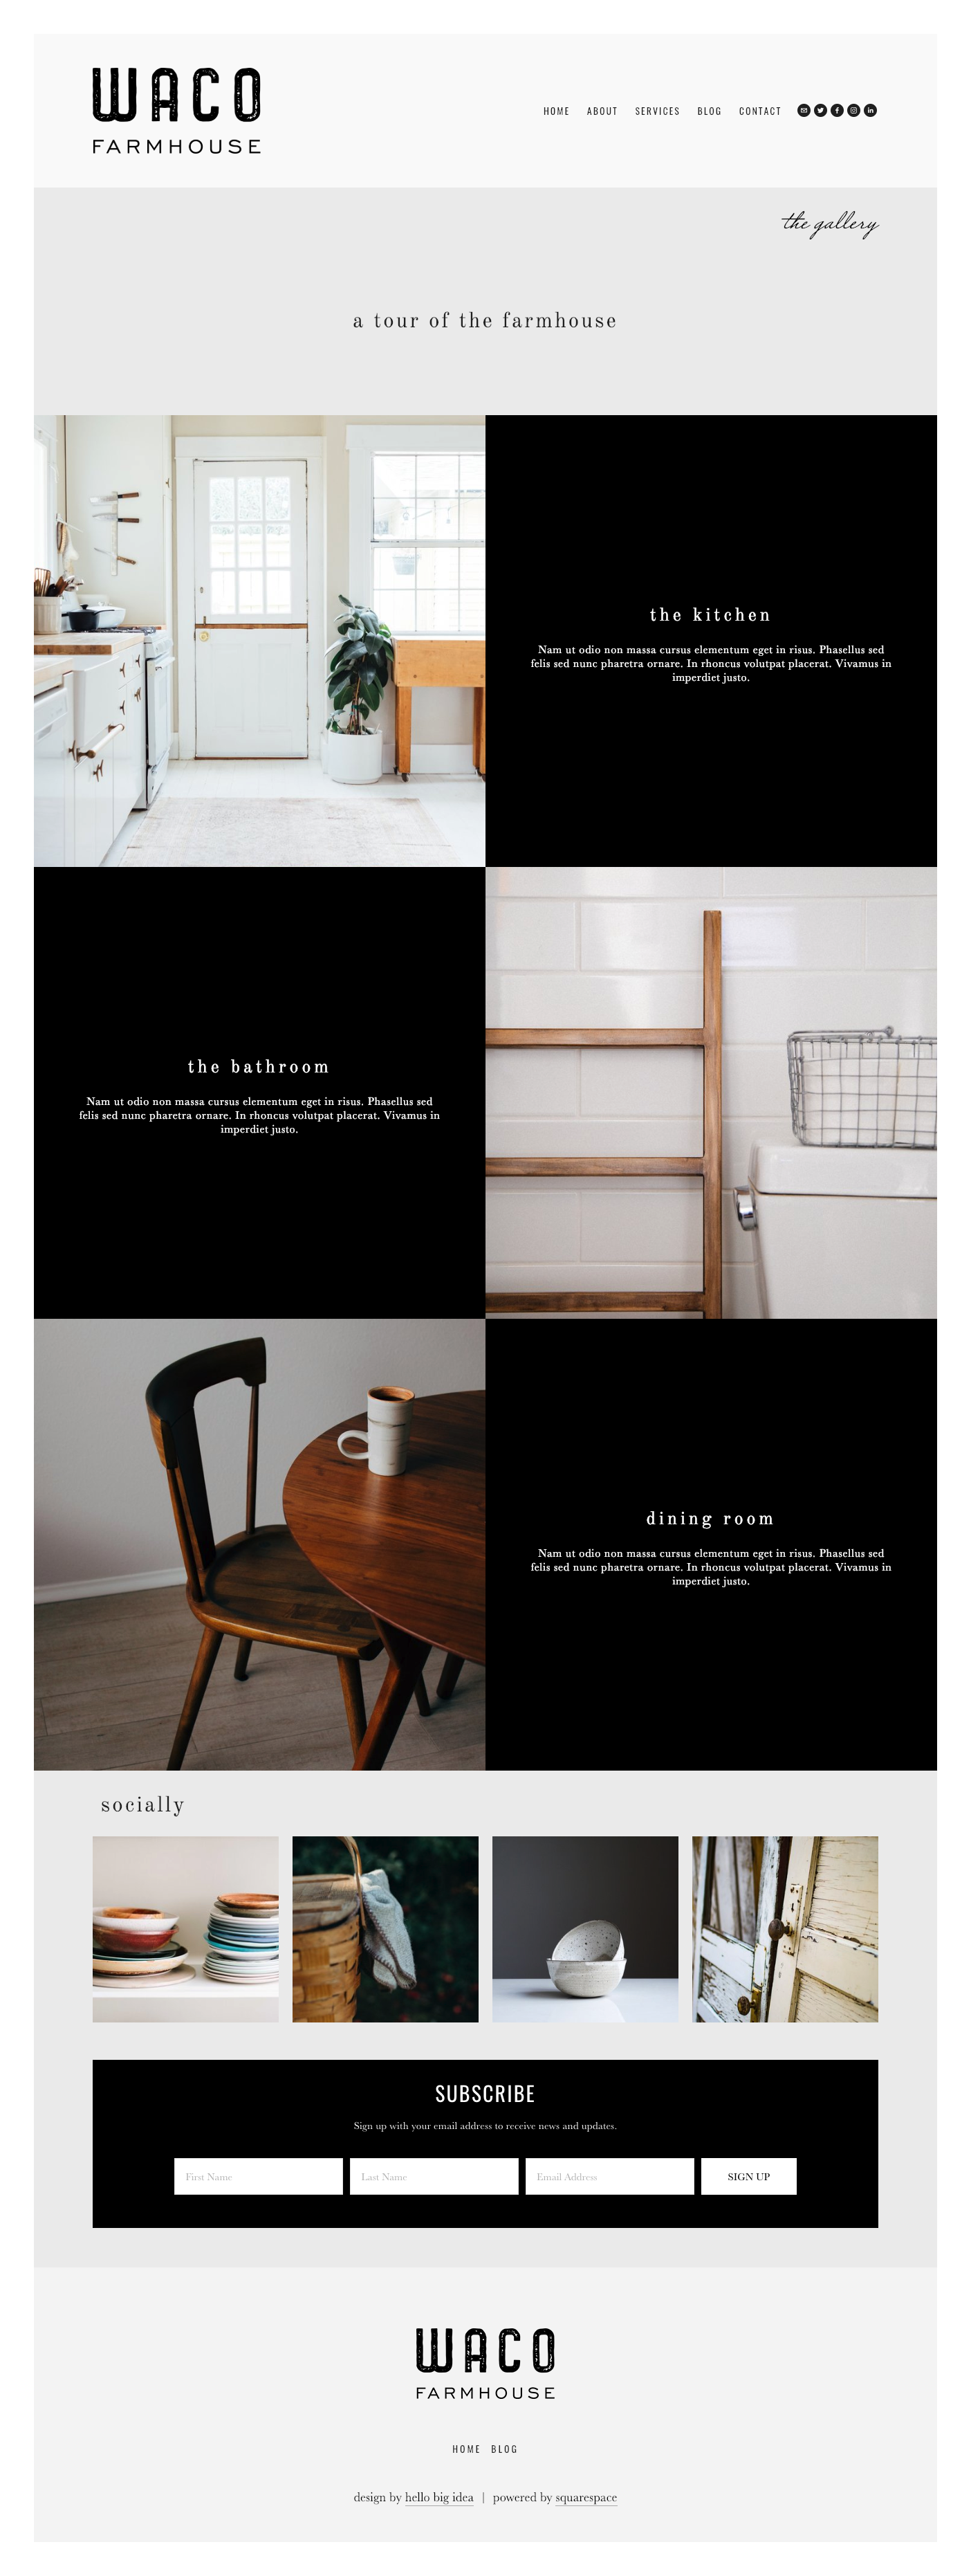 screencapture-hellowaco-squarespace-the-gallery-2018-12-30-20_14_48.png